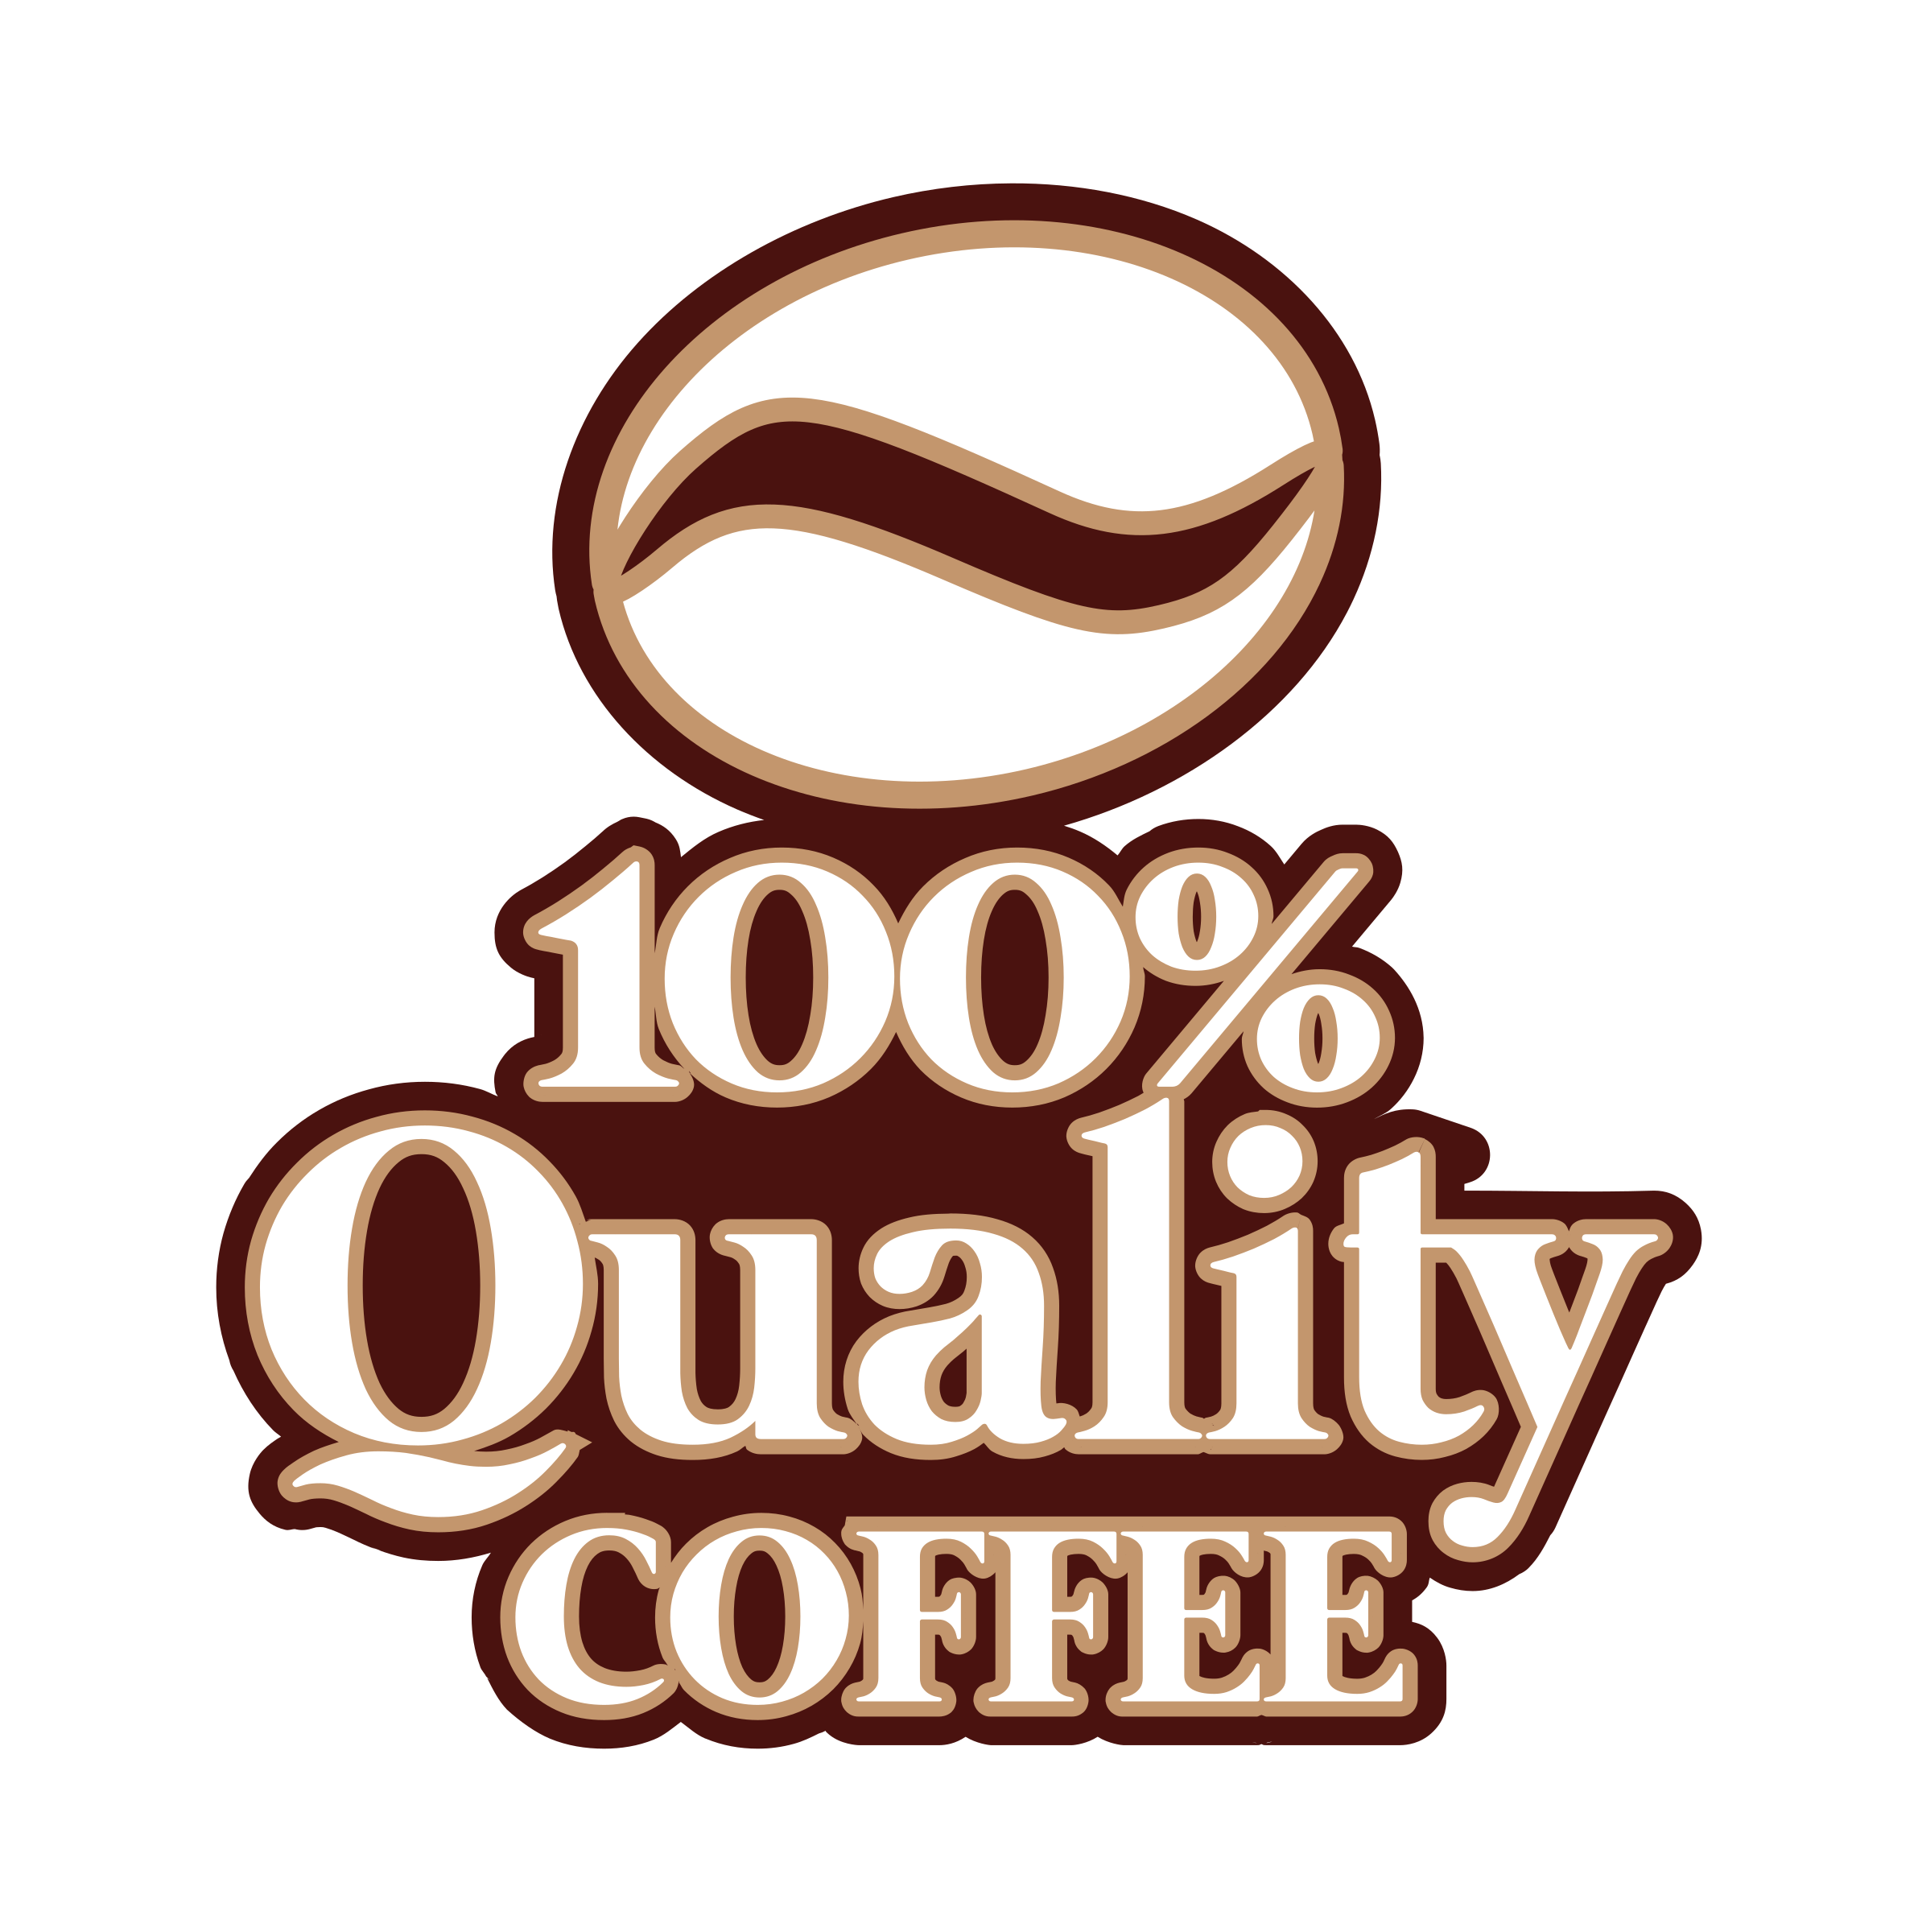 Coffee big image png. 100 clipart quality